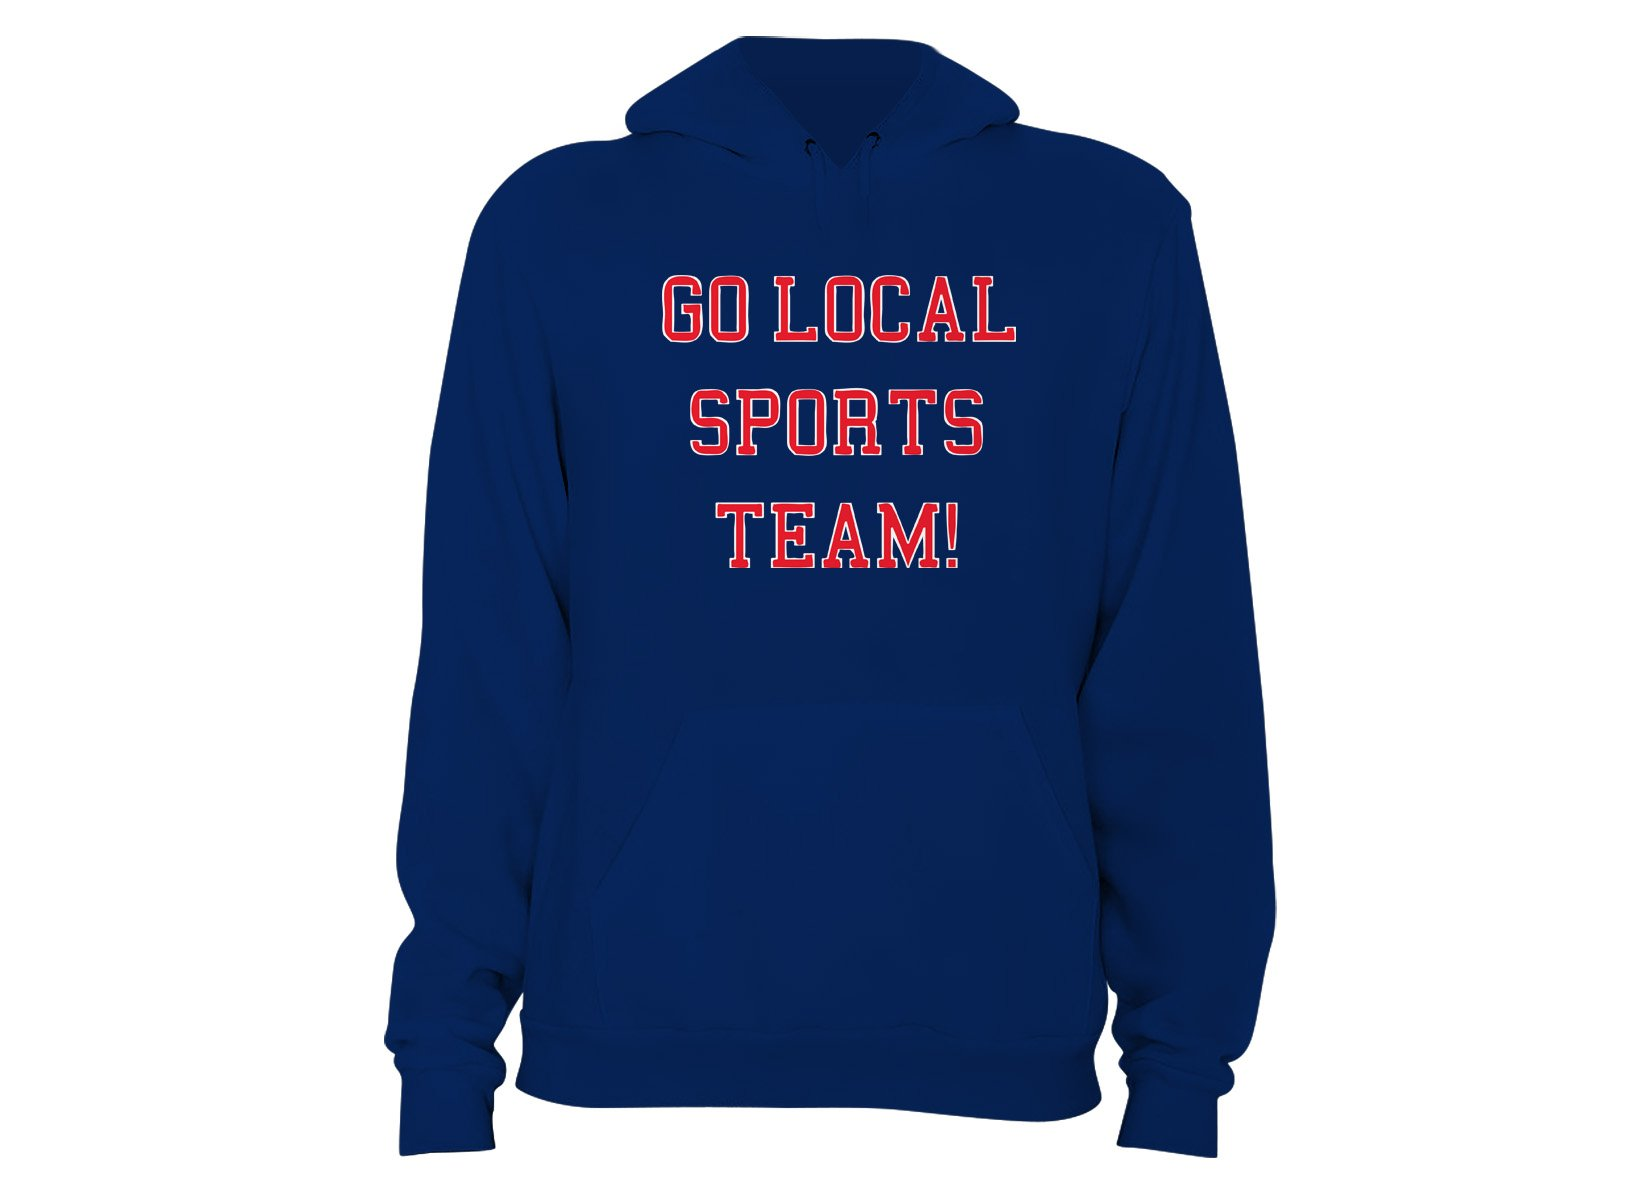 Go Local Sports Team! on Hoodie